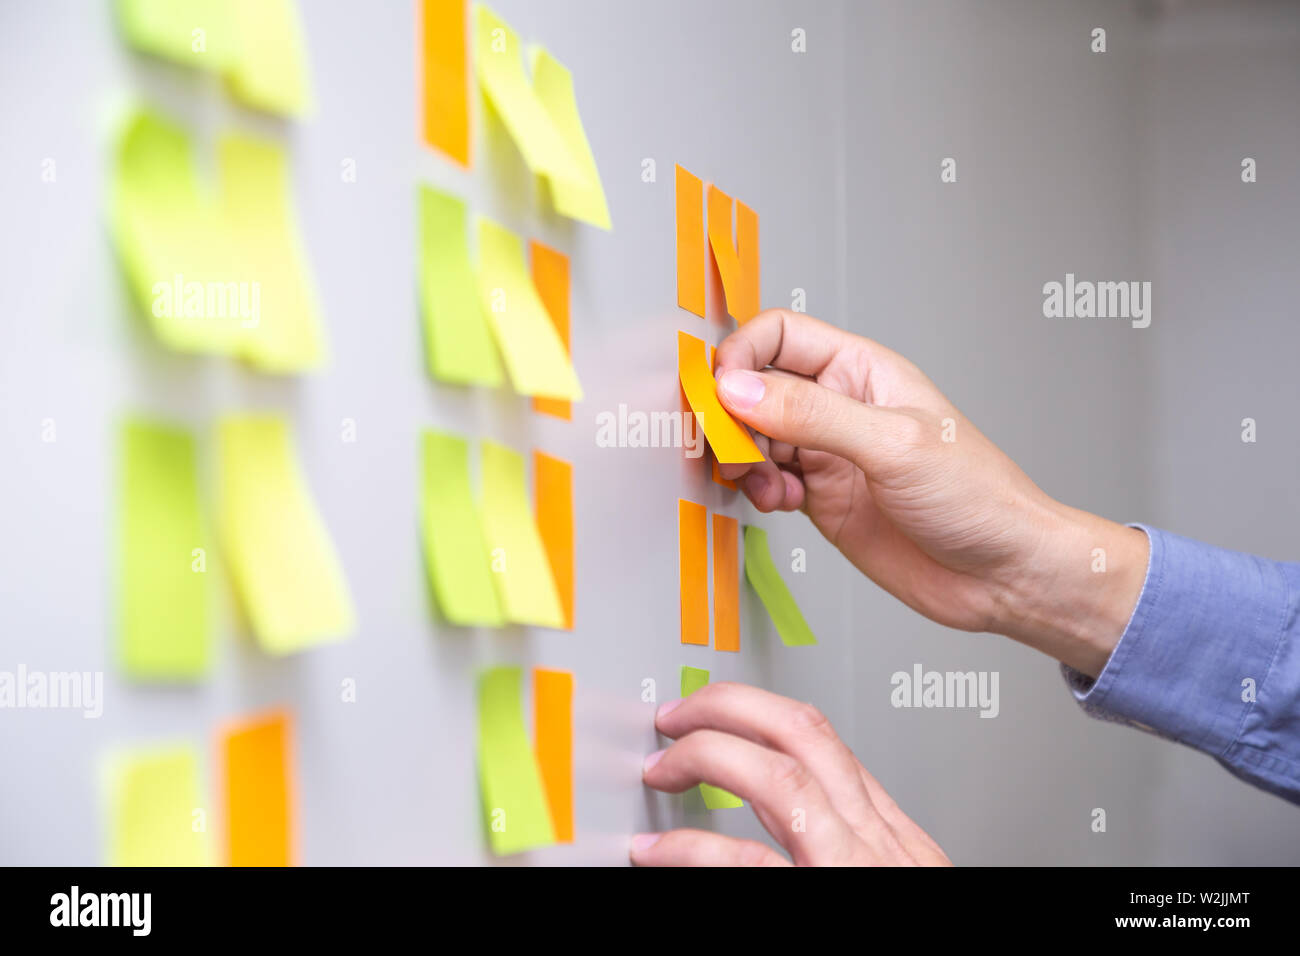 IT worker tracking his tasks on kanban board. Using task control of agile development methodology. Man attaching sticky note to scrum task board in th - Stock Image